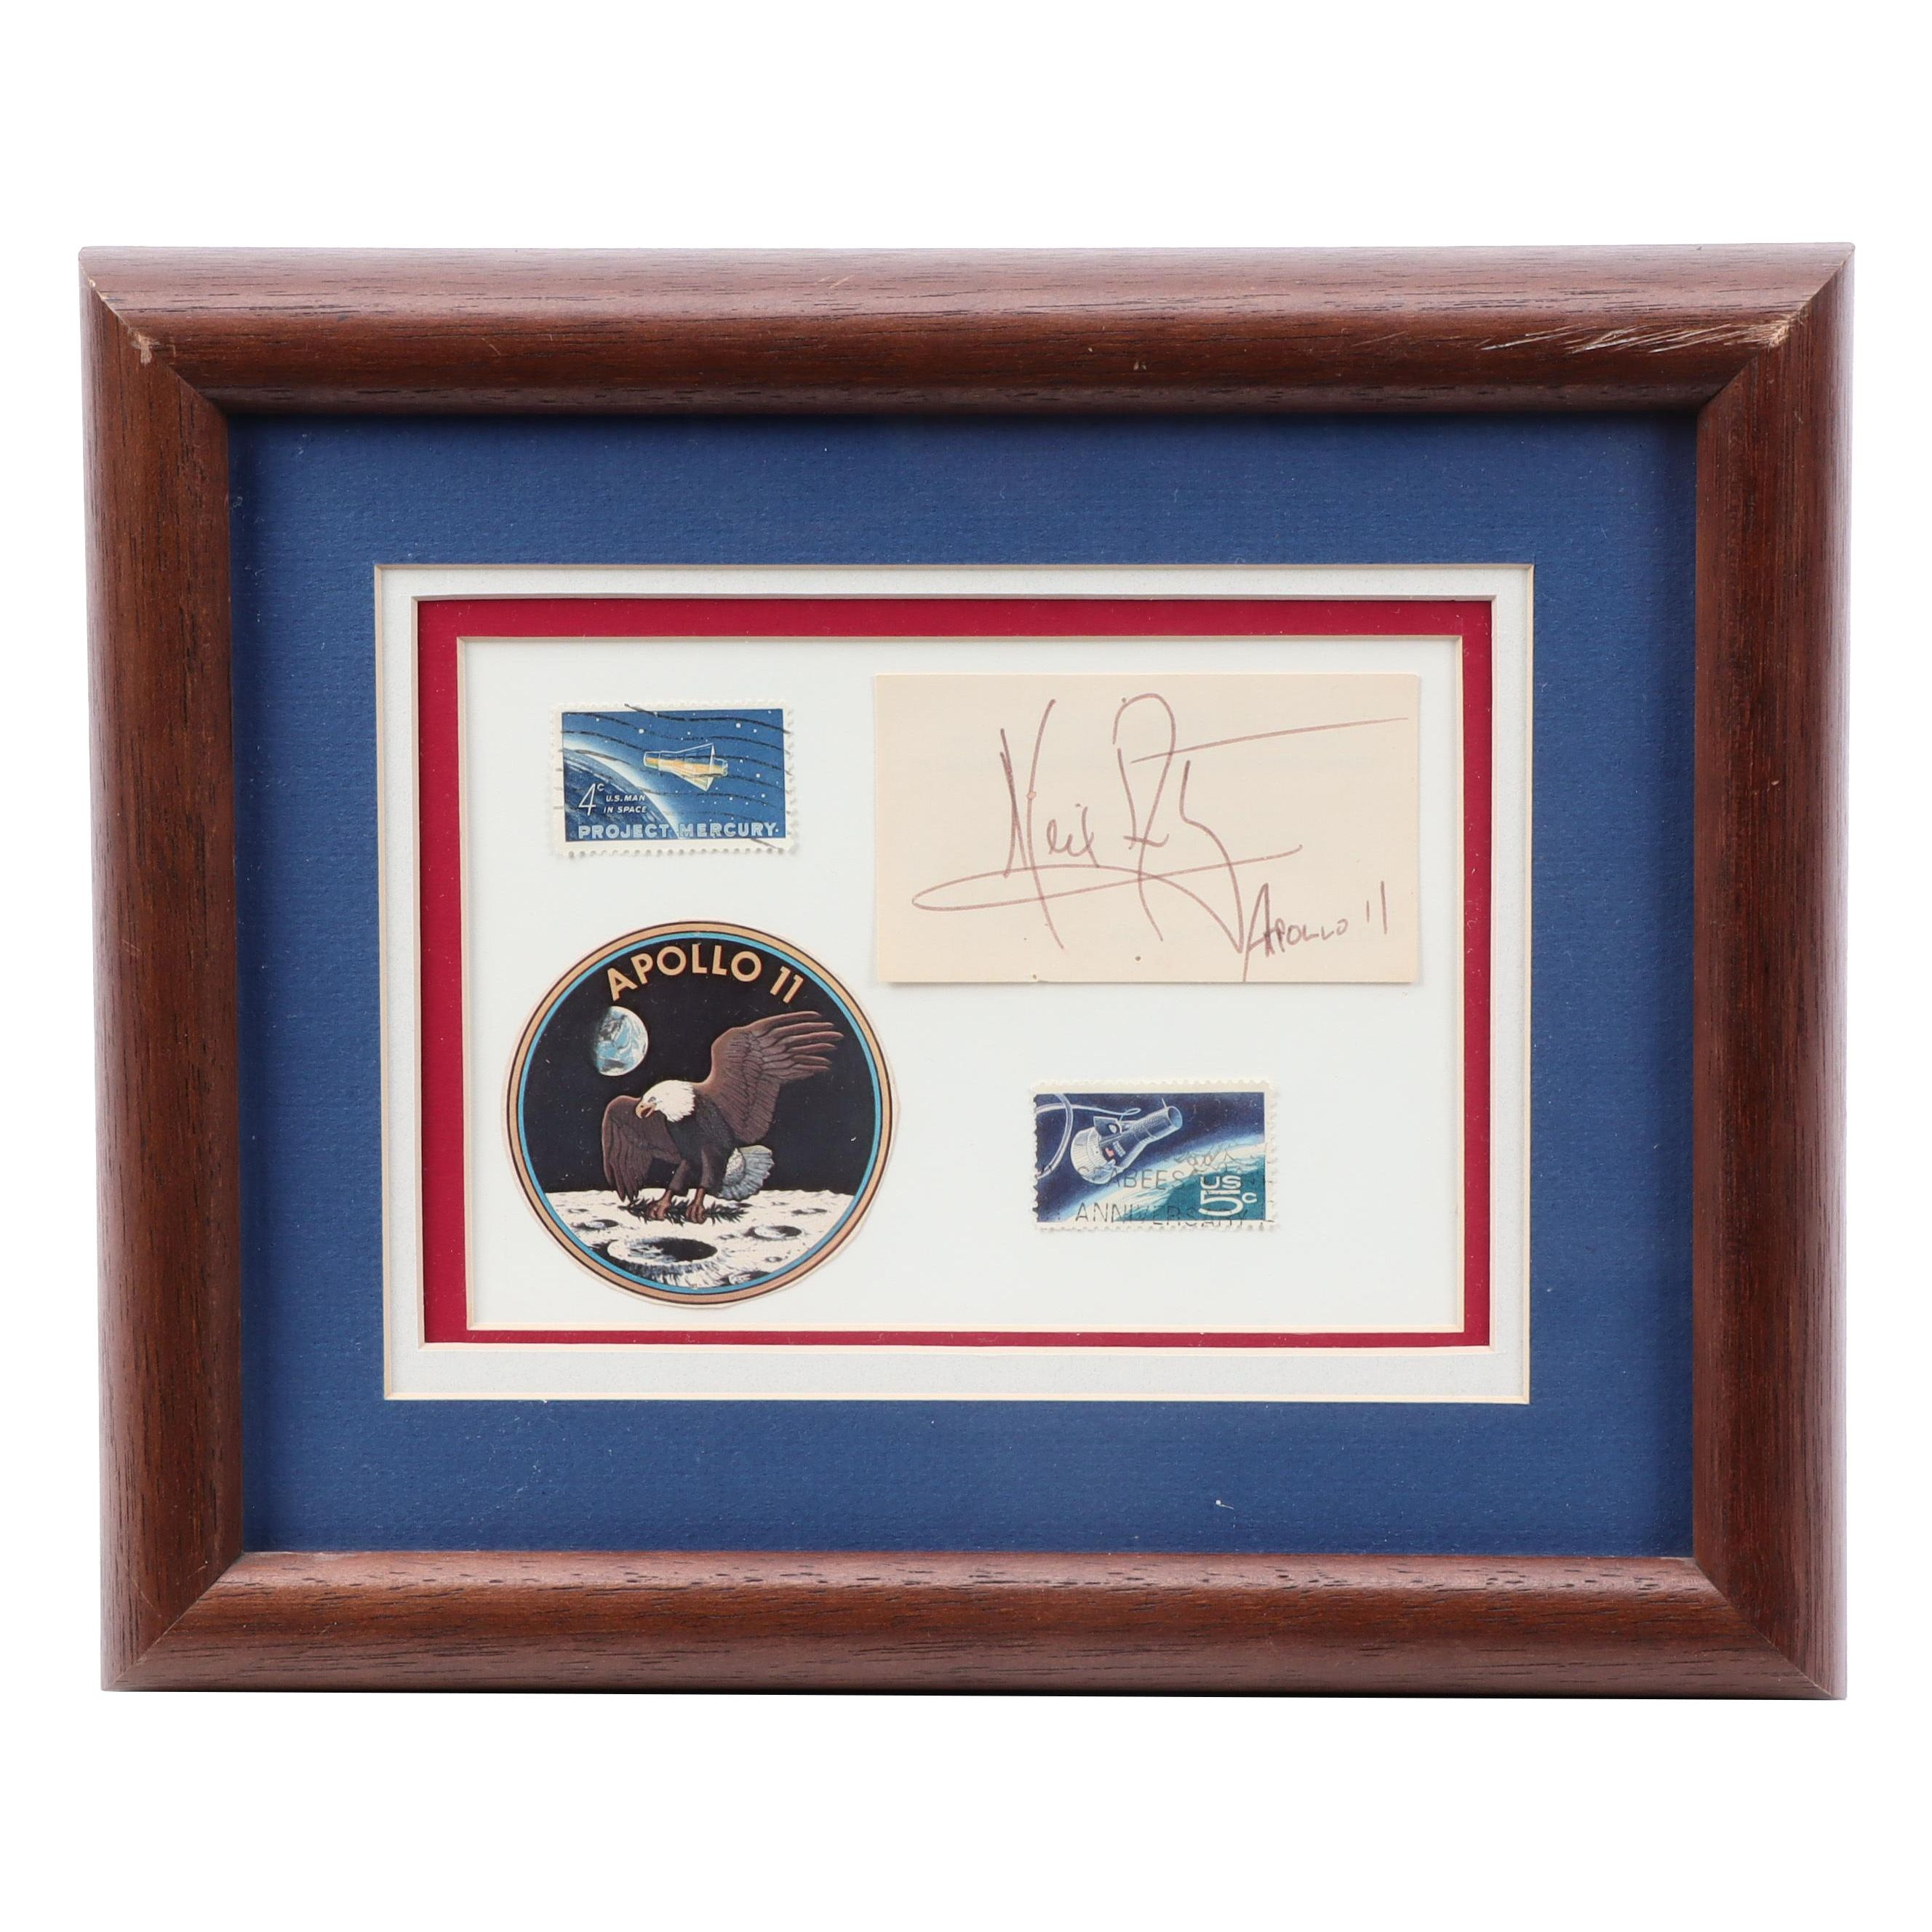 "Signed Neil Armstrong ""First Man on the Moon"" Apollo 11 Framed Display"